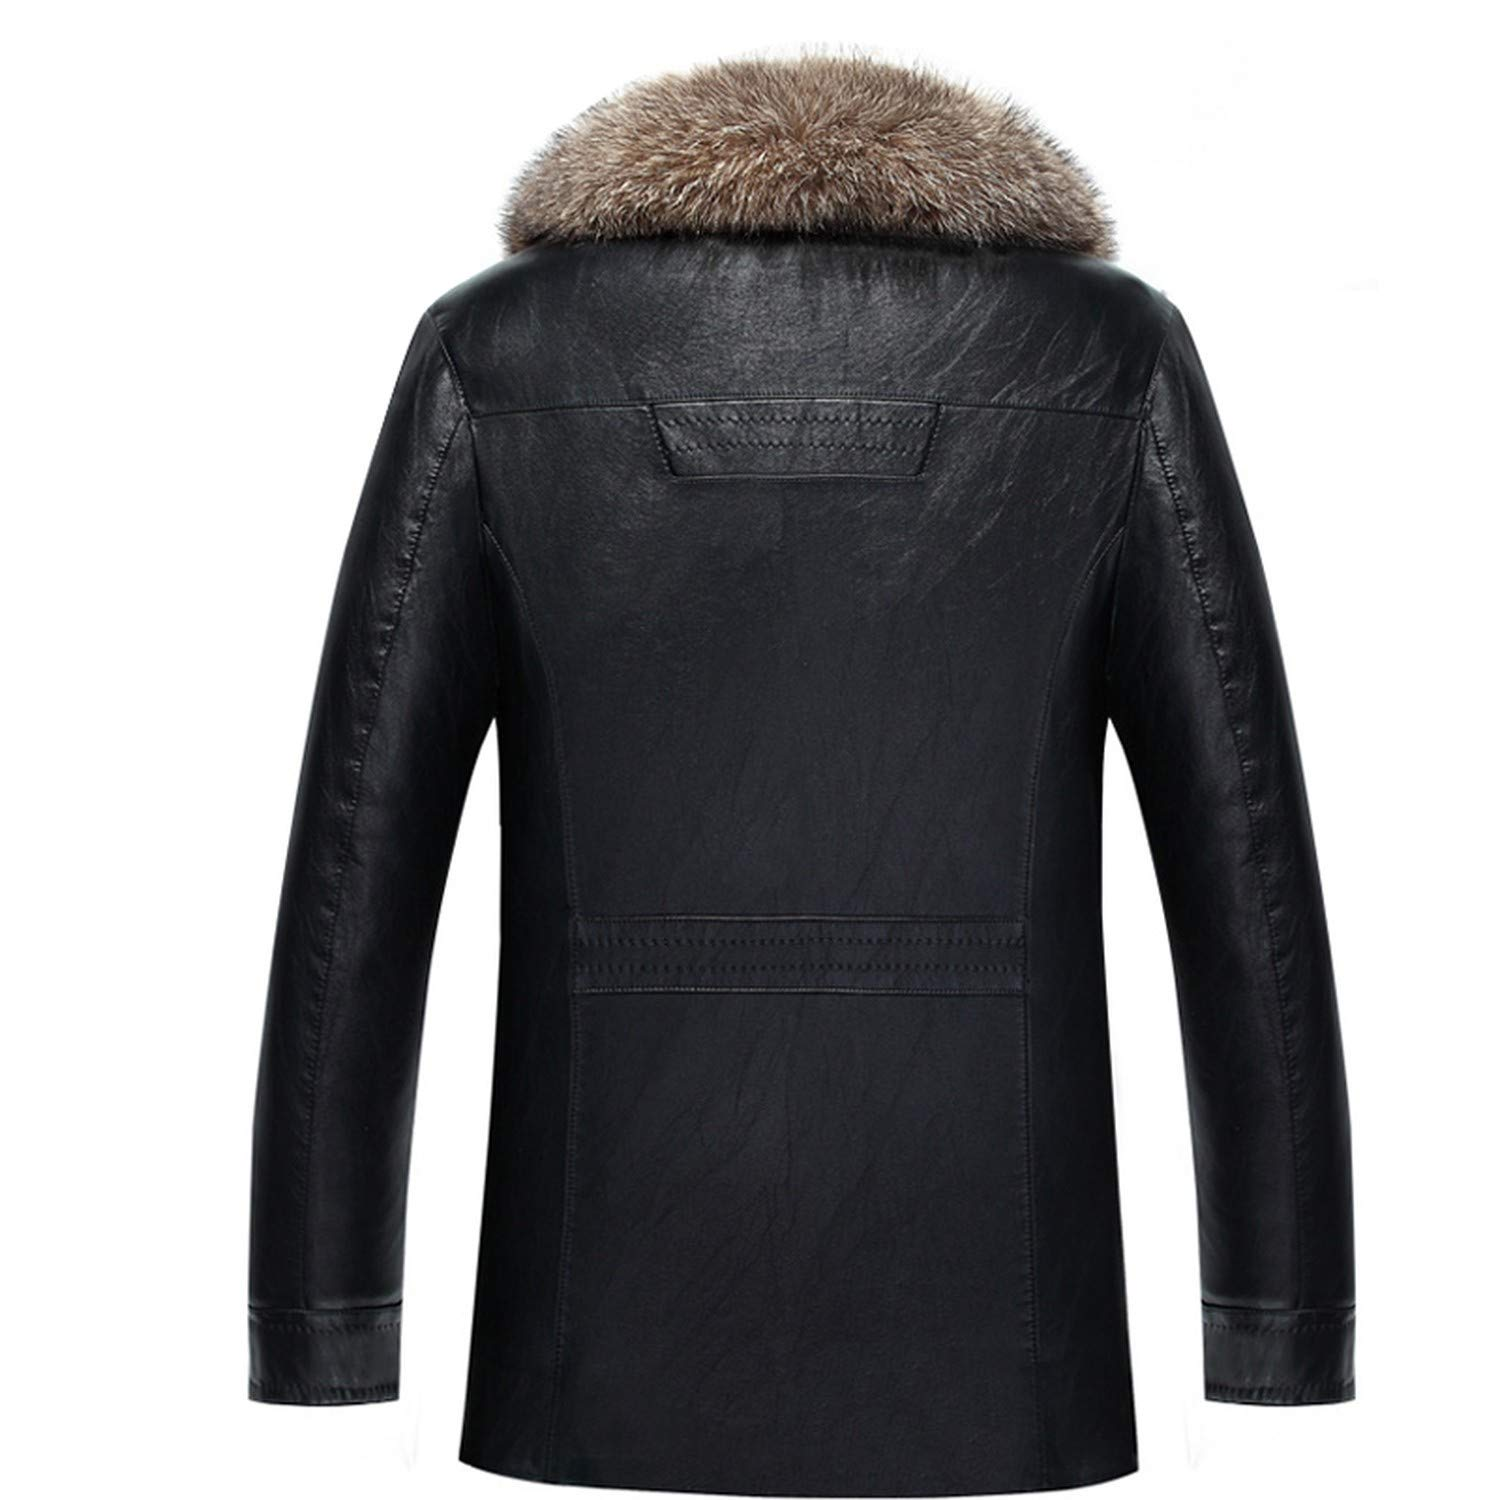 Real Raccoon Fur Collar Men Faux Leather Jackets Winter Thicken Coat Jaqueta Men PU Leather